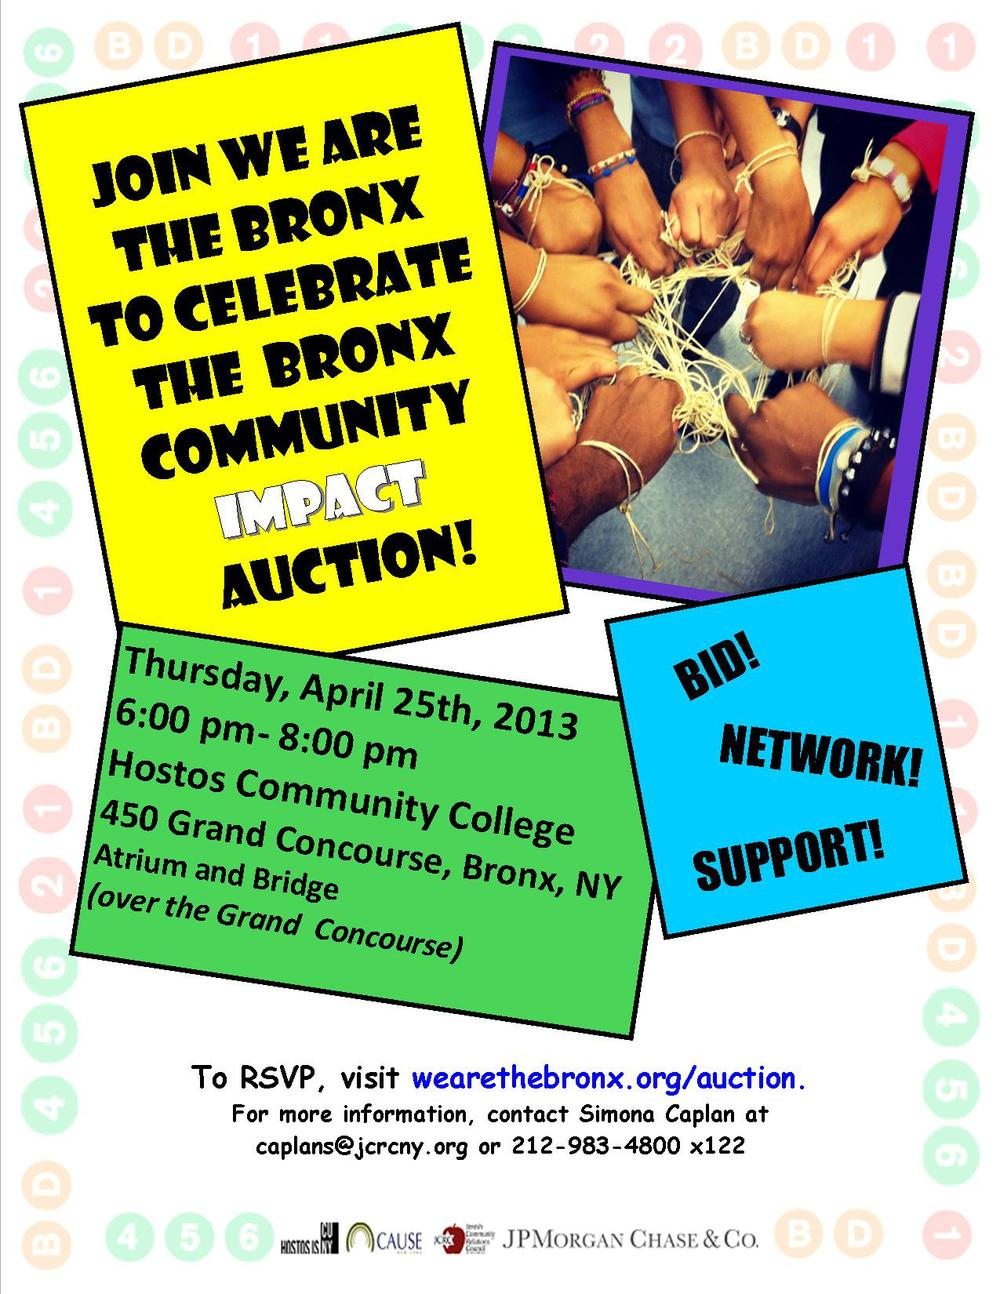 WATB Auction EVENT Flyer.jpg